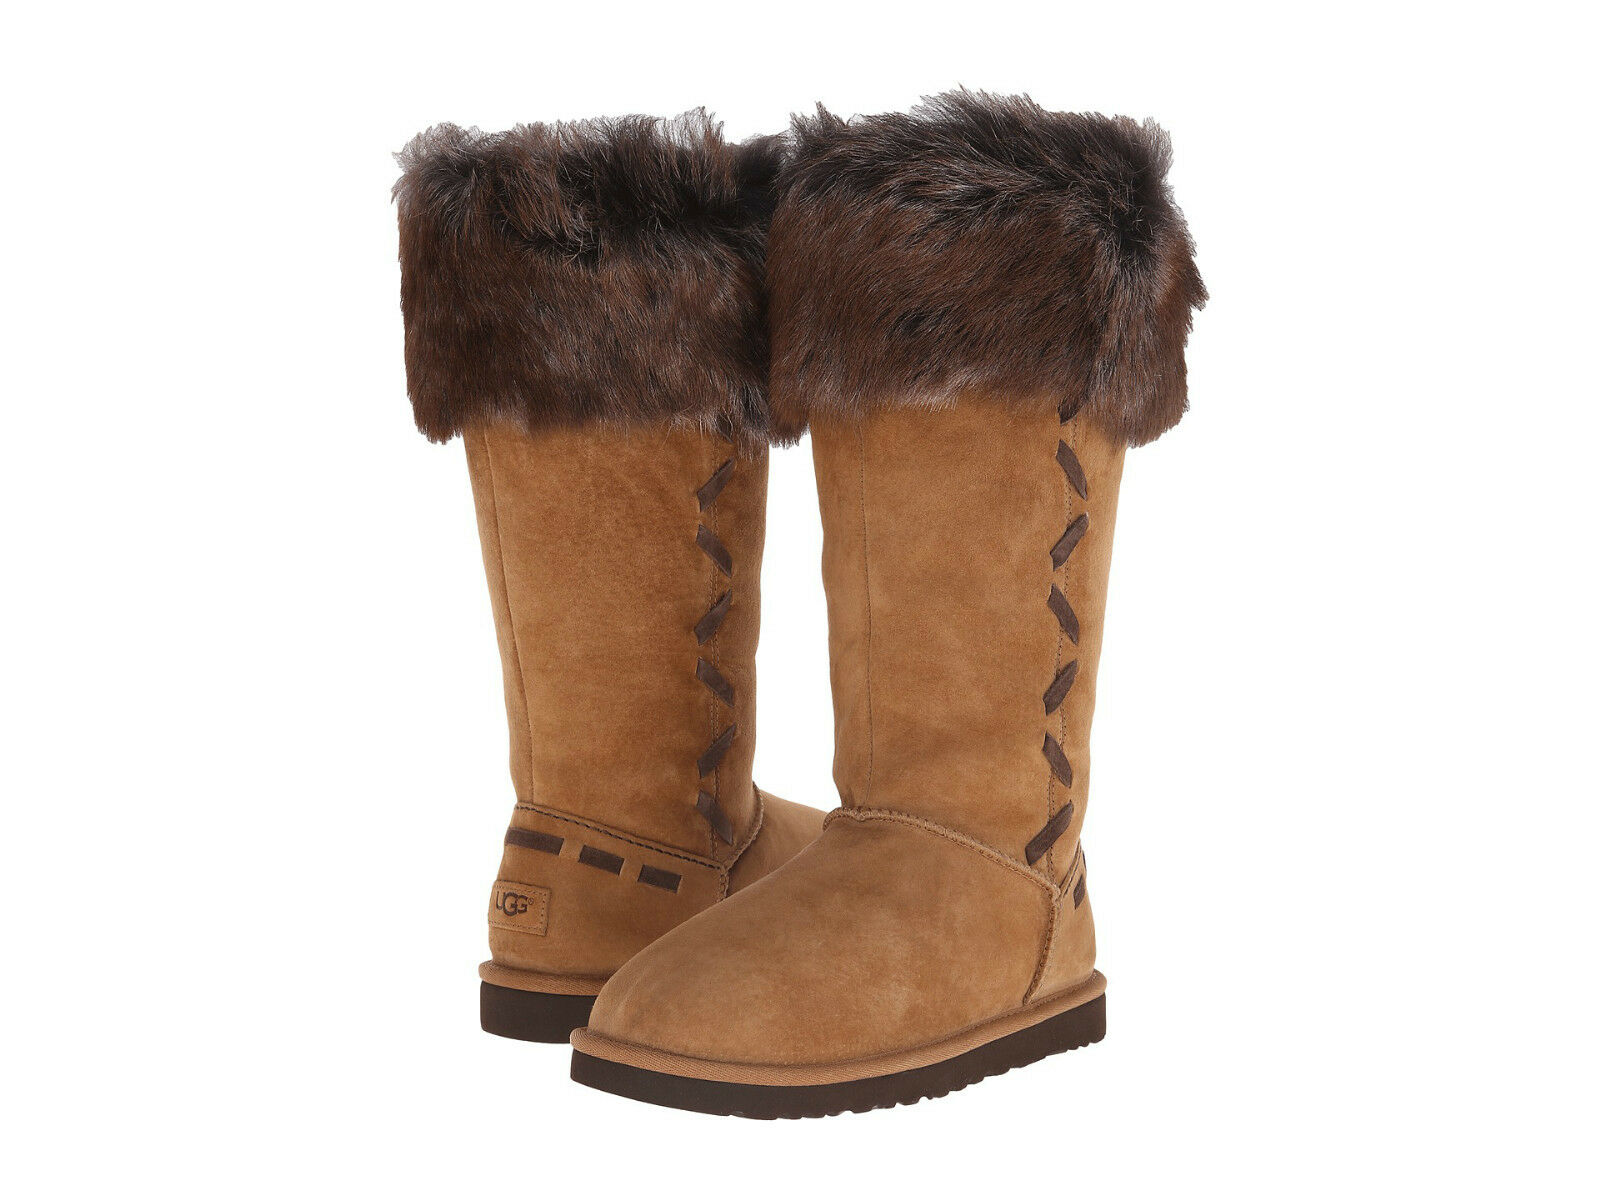 Womens Boots UGG Rosana Chestnut Suede